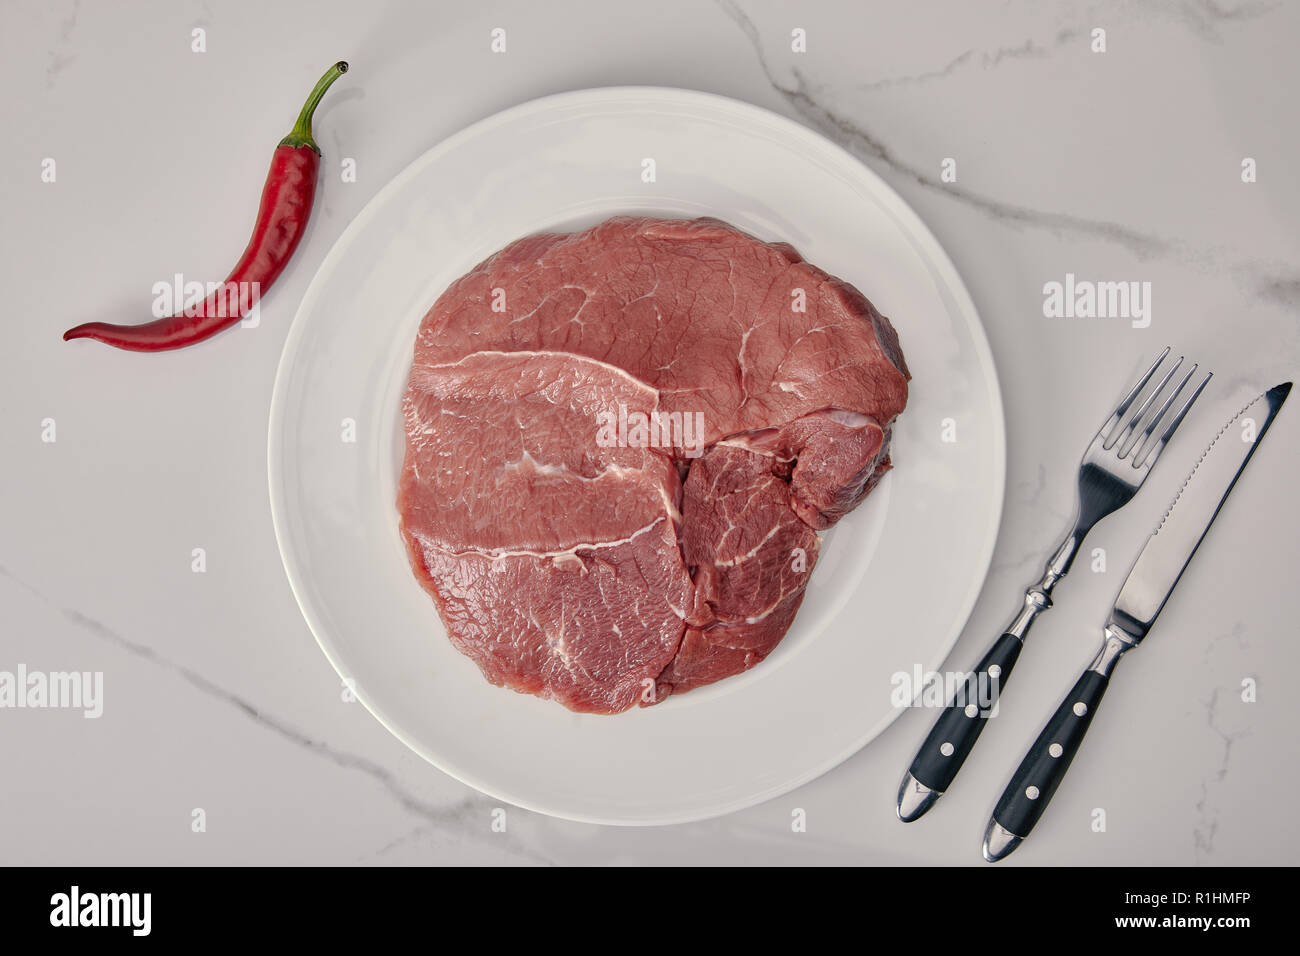 top view of fresh raw meat on plate with kitchen cutlery and chilli pepper on white background - Stock Image